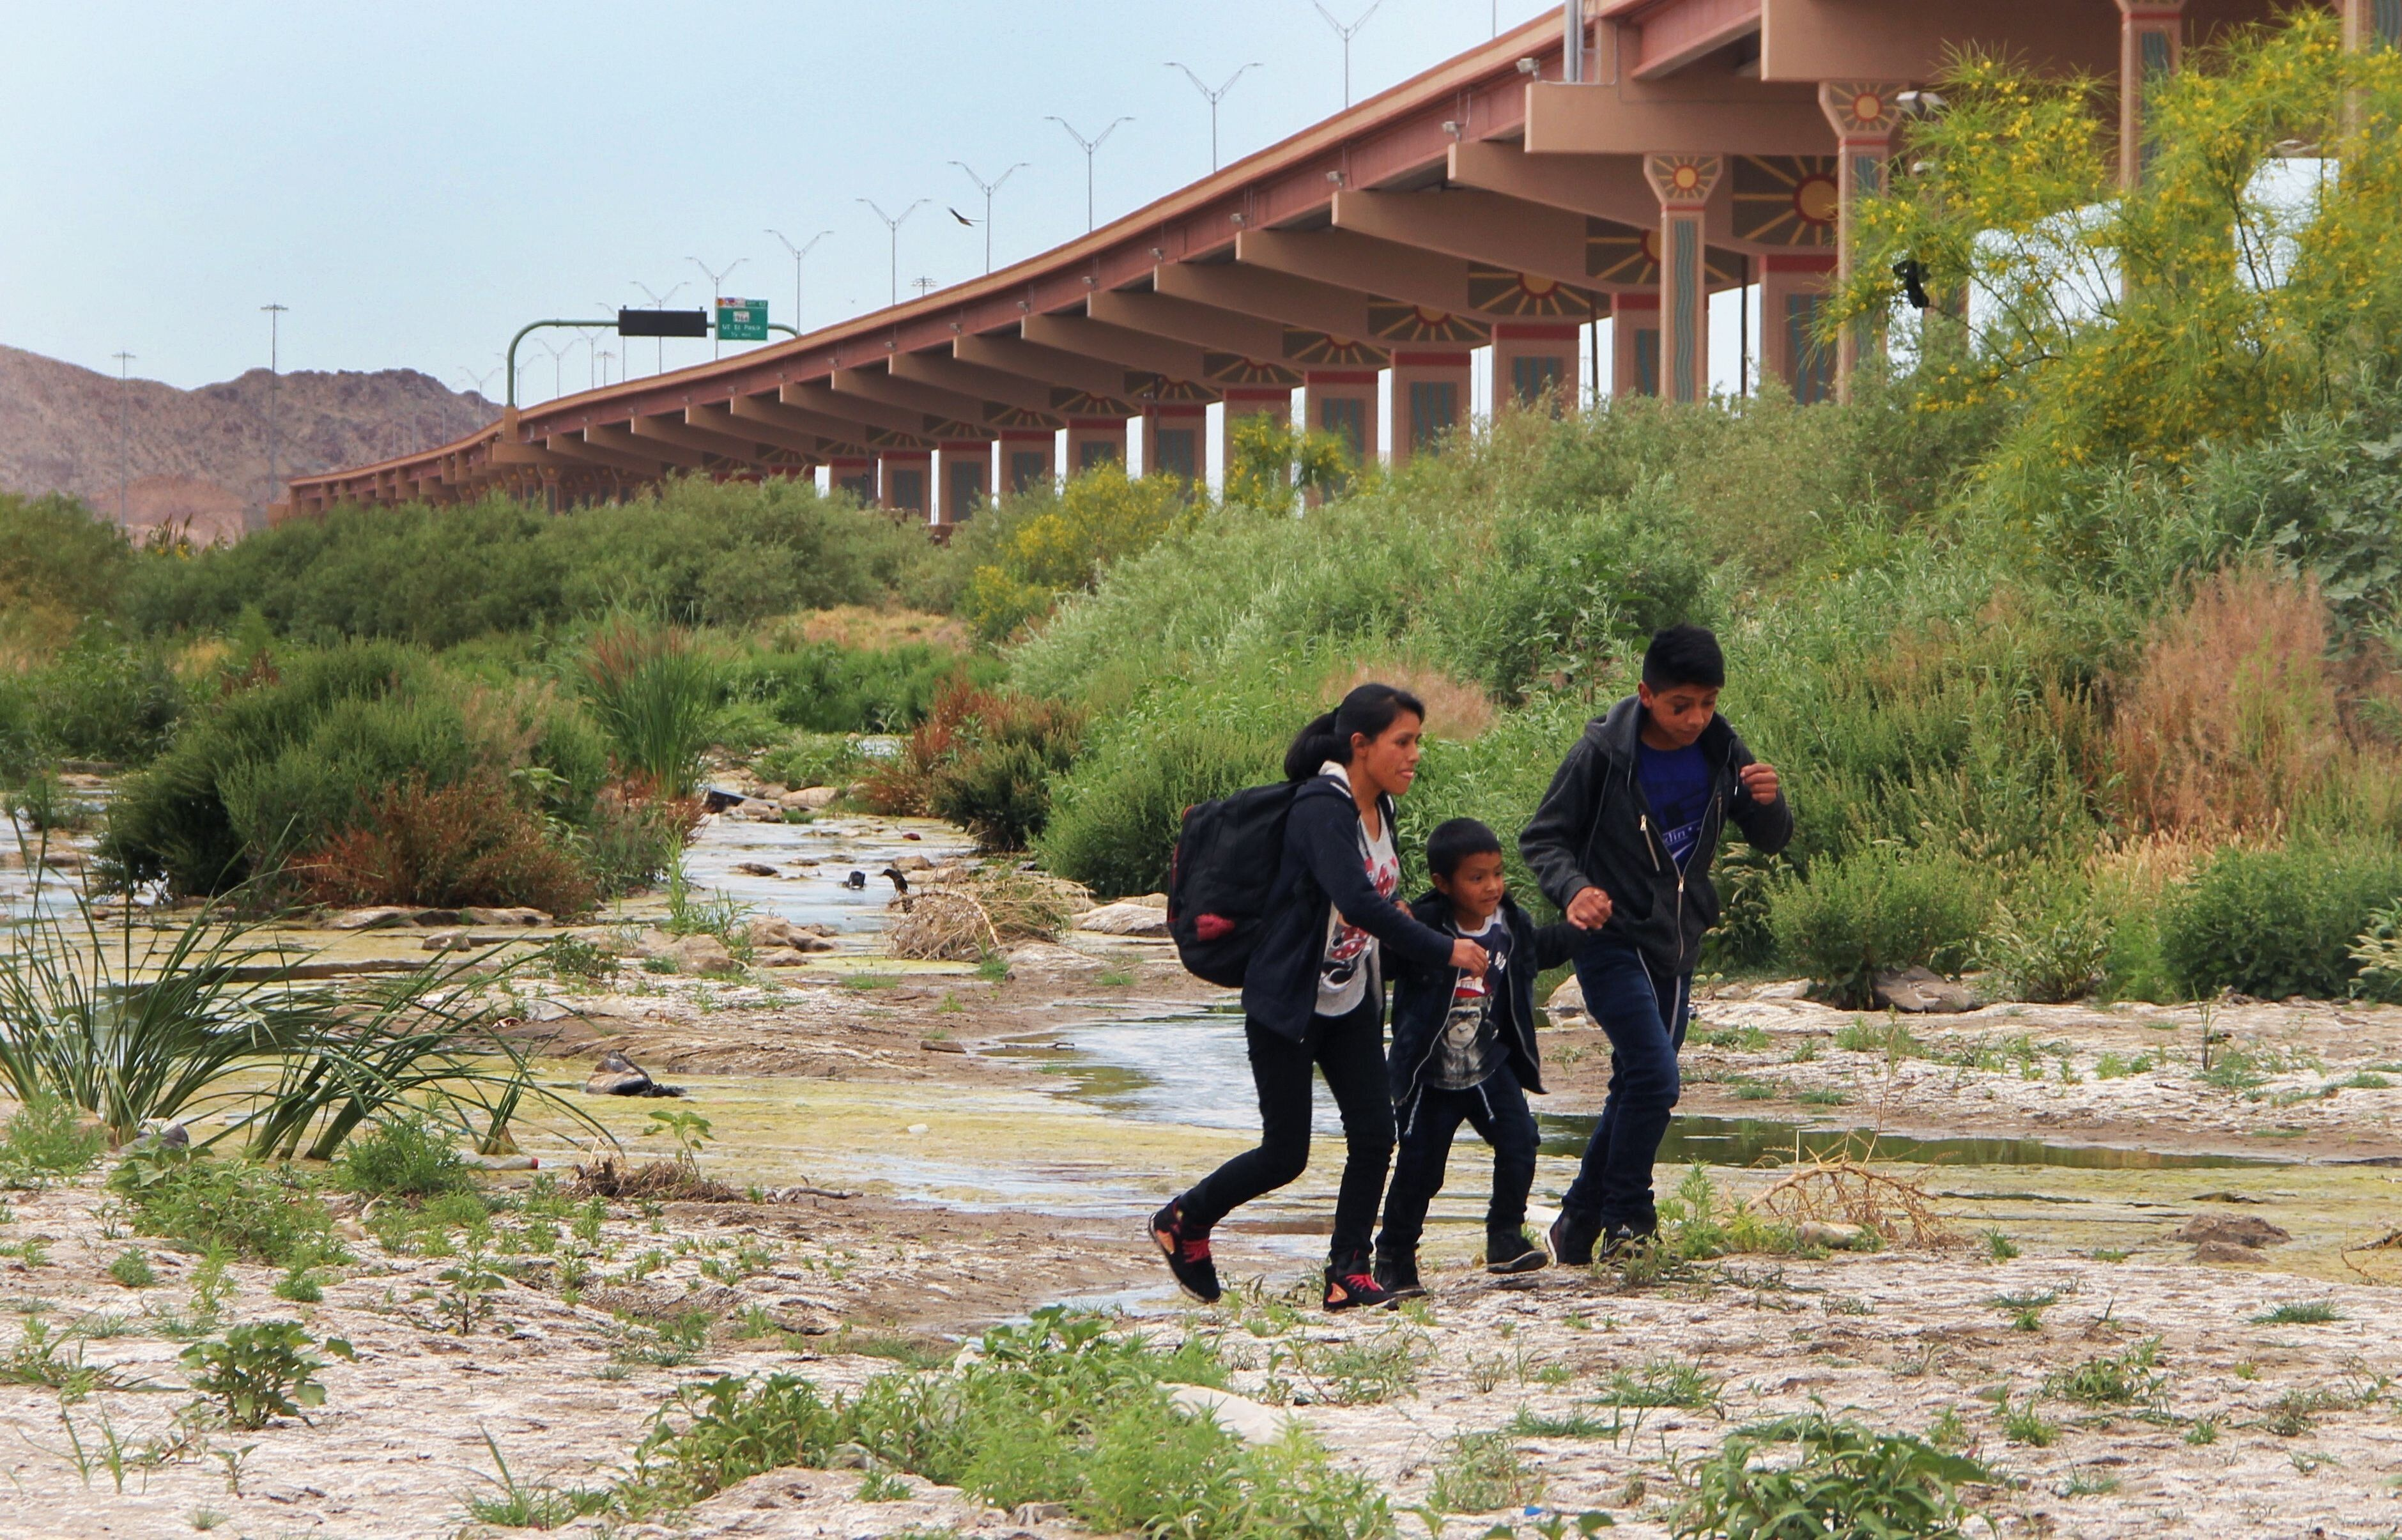 Central American migrants cross the border between Ciudad Juarez, Chihuahua State, Mexico and El Paso, Texas, US, before being detained by US Customs and Border Patrol agents on May 7, 2019. (Photo by Herika MARTINEZ / AFP)        (Photo credit should read HERIKA MARTINEZ/AFP/Getty Images)